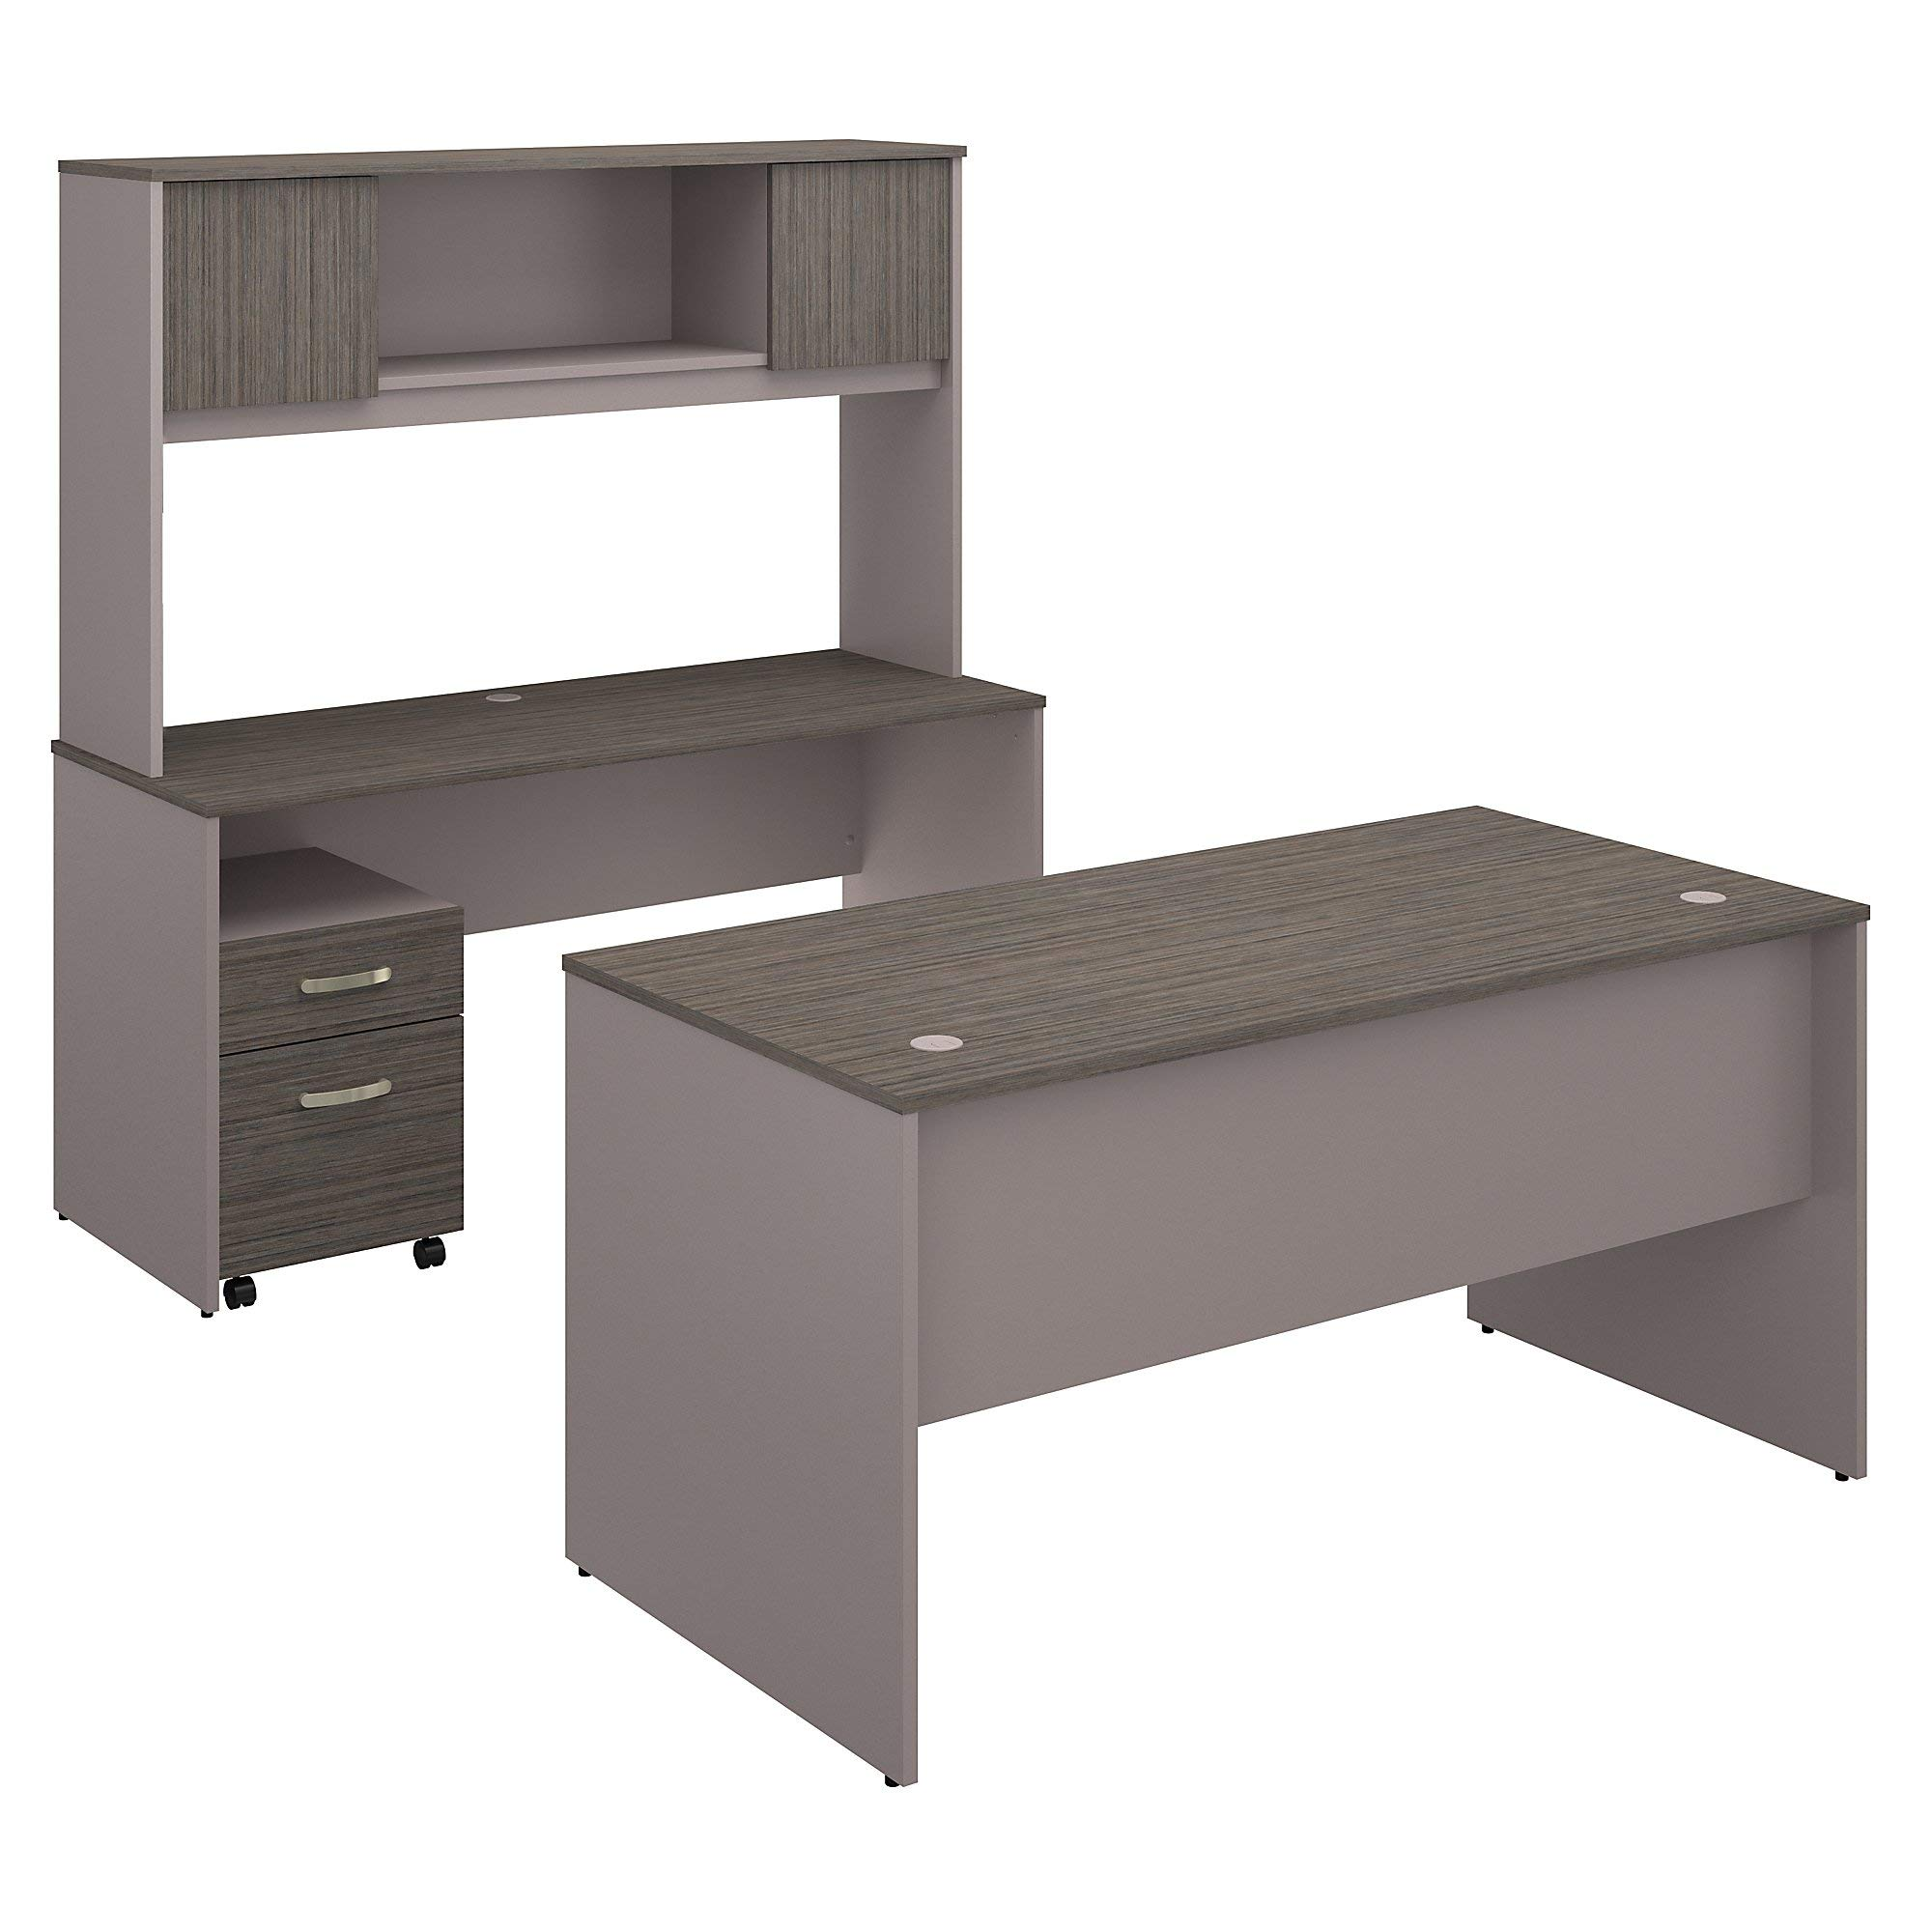 Bush Furniture Commerce 60W Office Desk with Credenza, Hutch and Mobile File Cabinet in Cocoa and Pewter by Bush Furniture